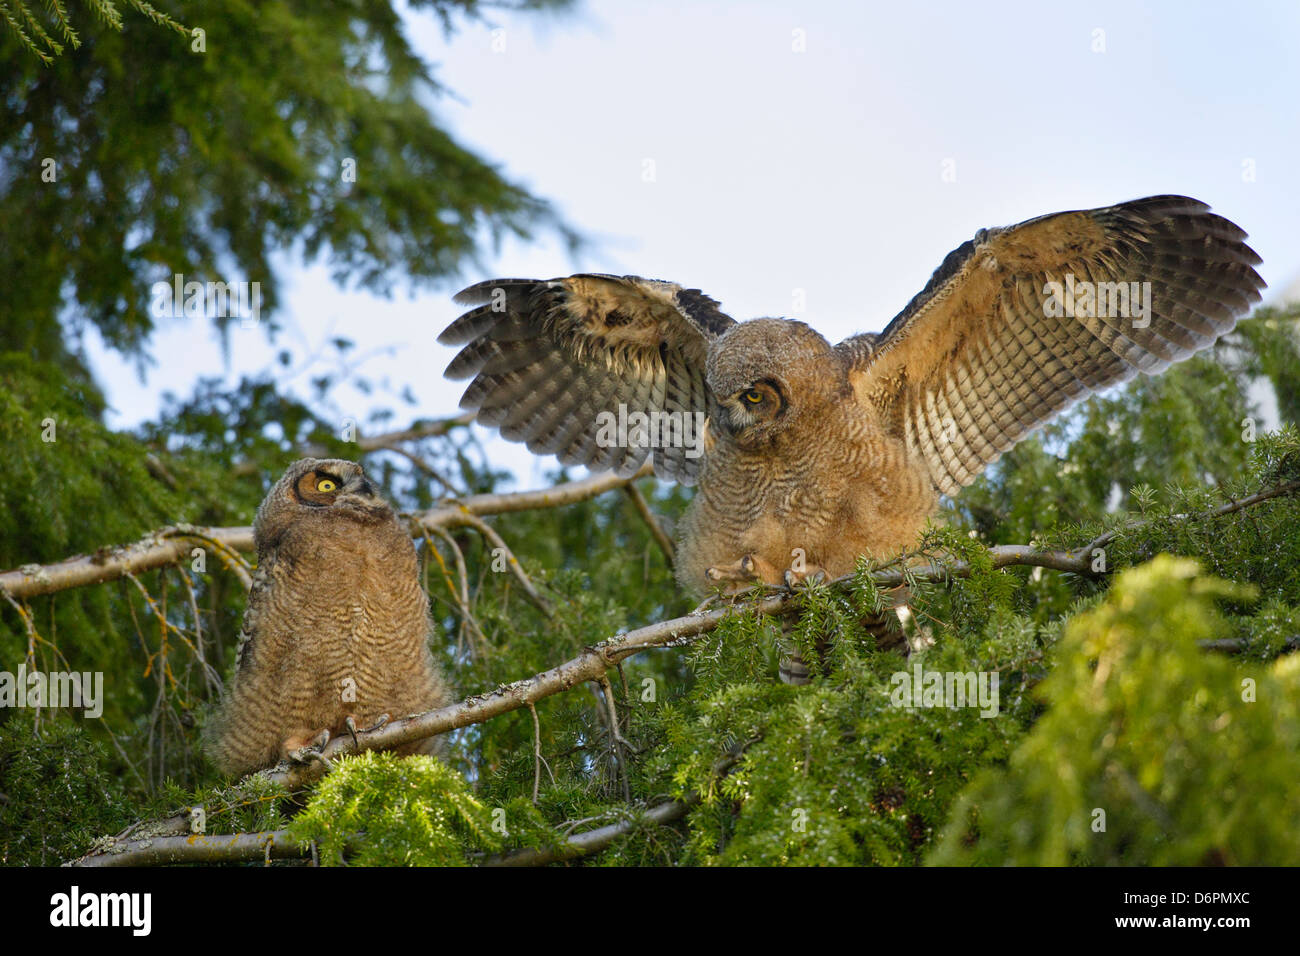 Great horned owlet fledglings roosting on tree while learning to exercise wings-Victoria, British Columbia, Canada. - Stock Image